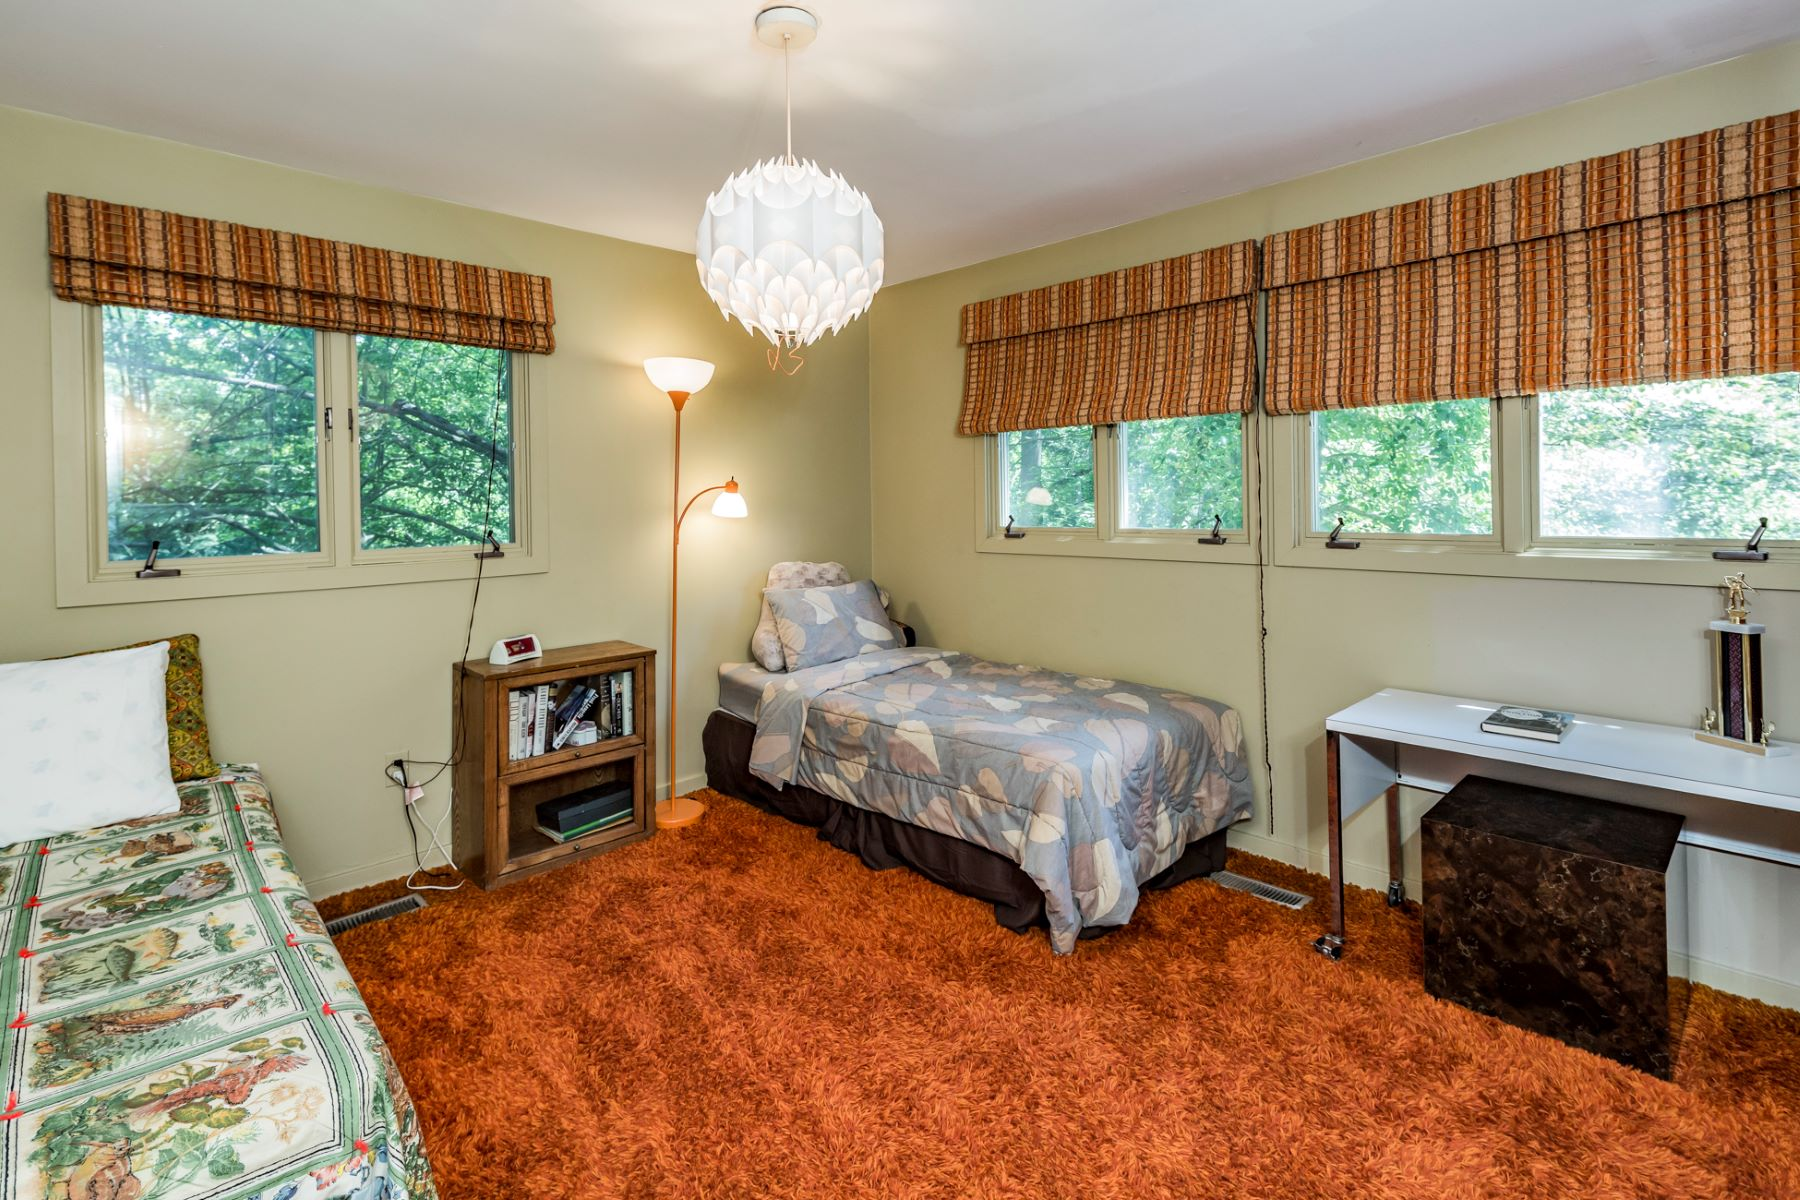 Additional photo for property listing at A True Mid Century Modern and an Emerald Landscape 84 Allison Road, Princeton, New Jersey 08540 United States